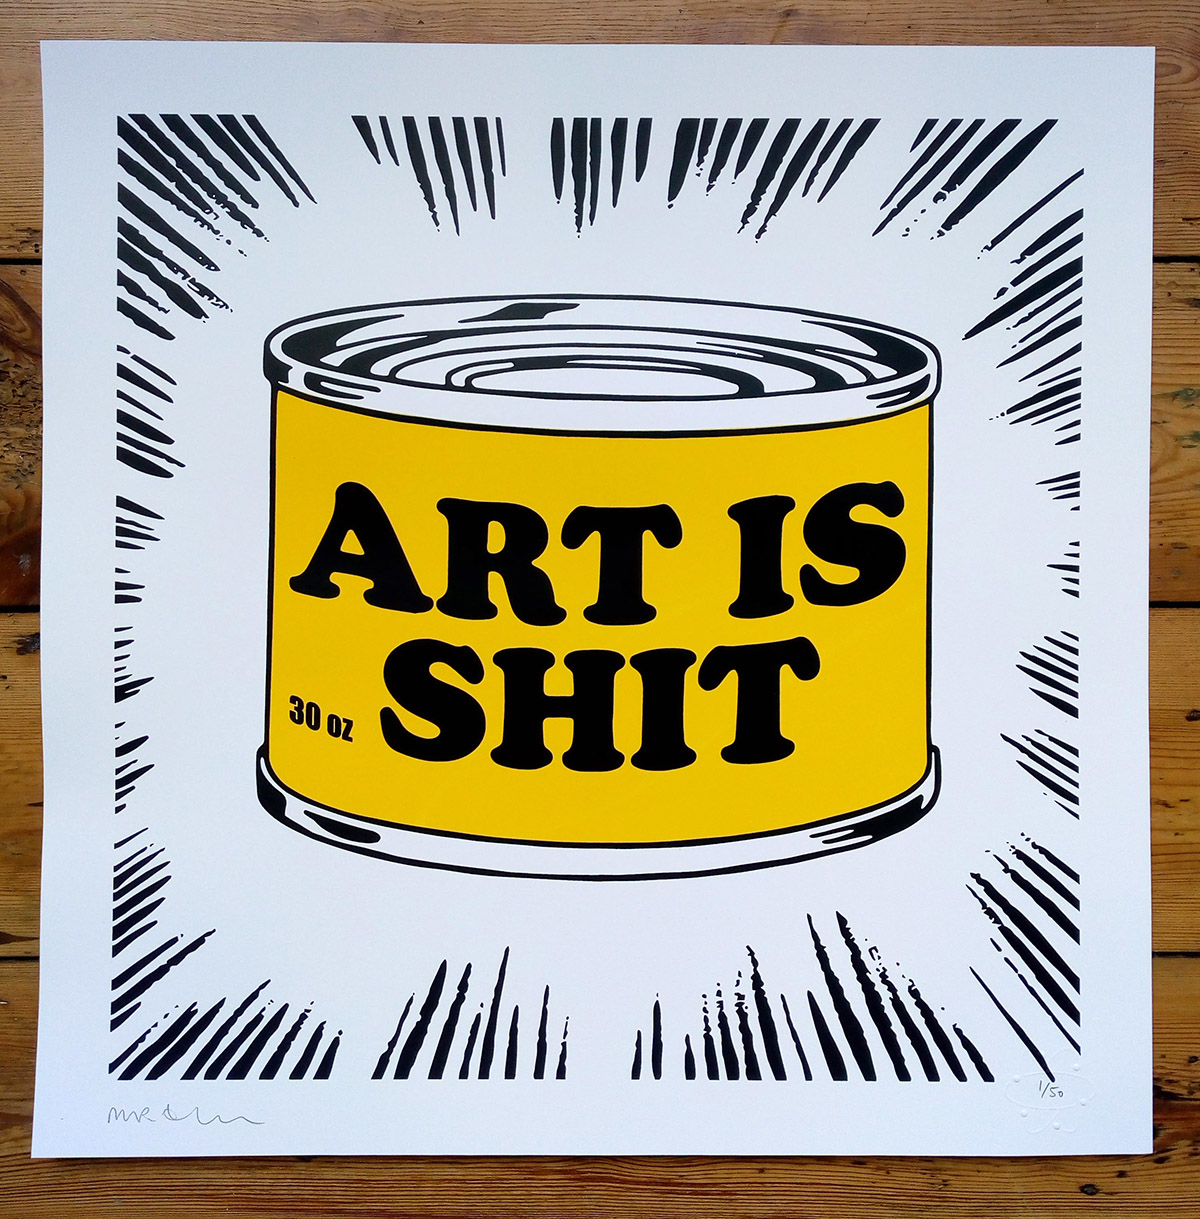 ''Art is shit'' limited edition screenprint by Mr Edwards